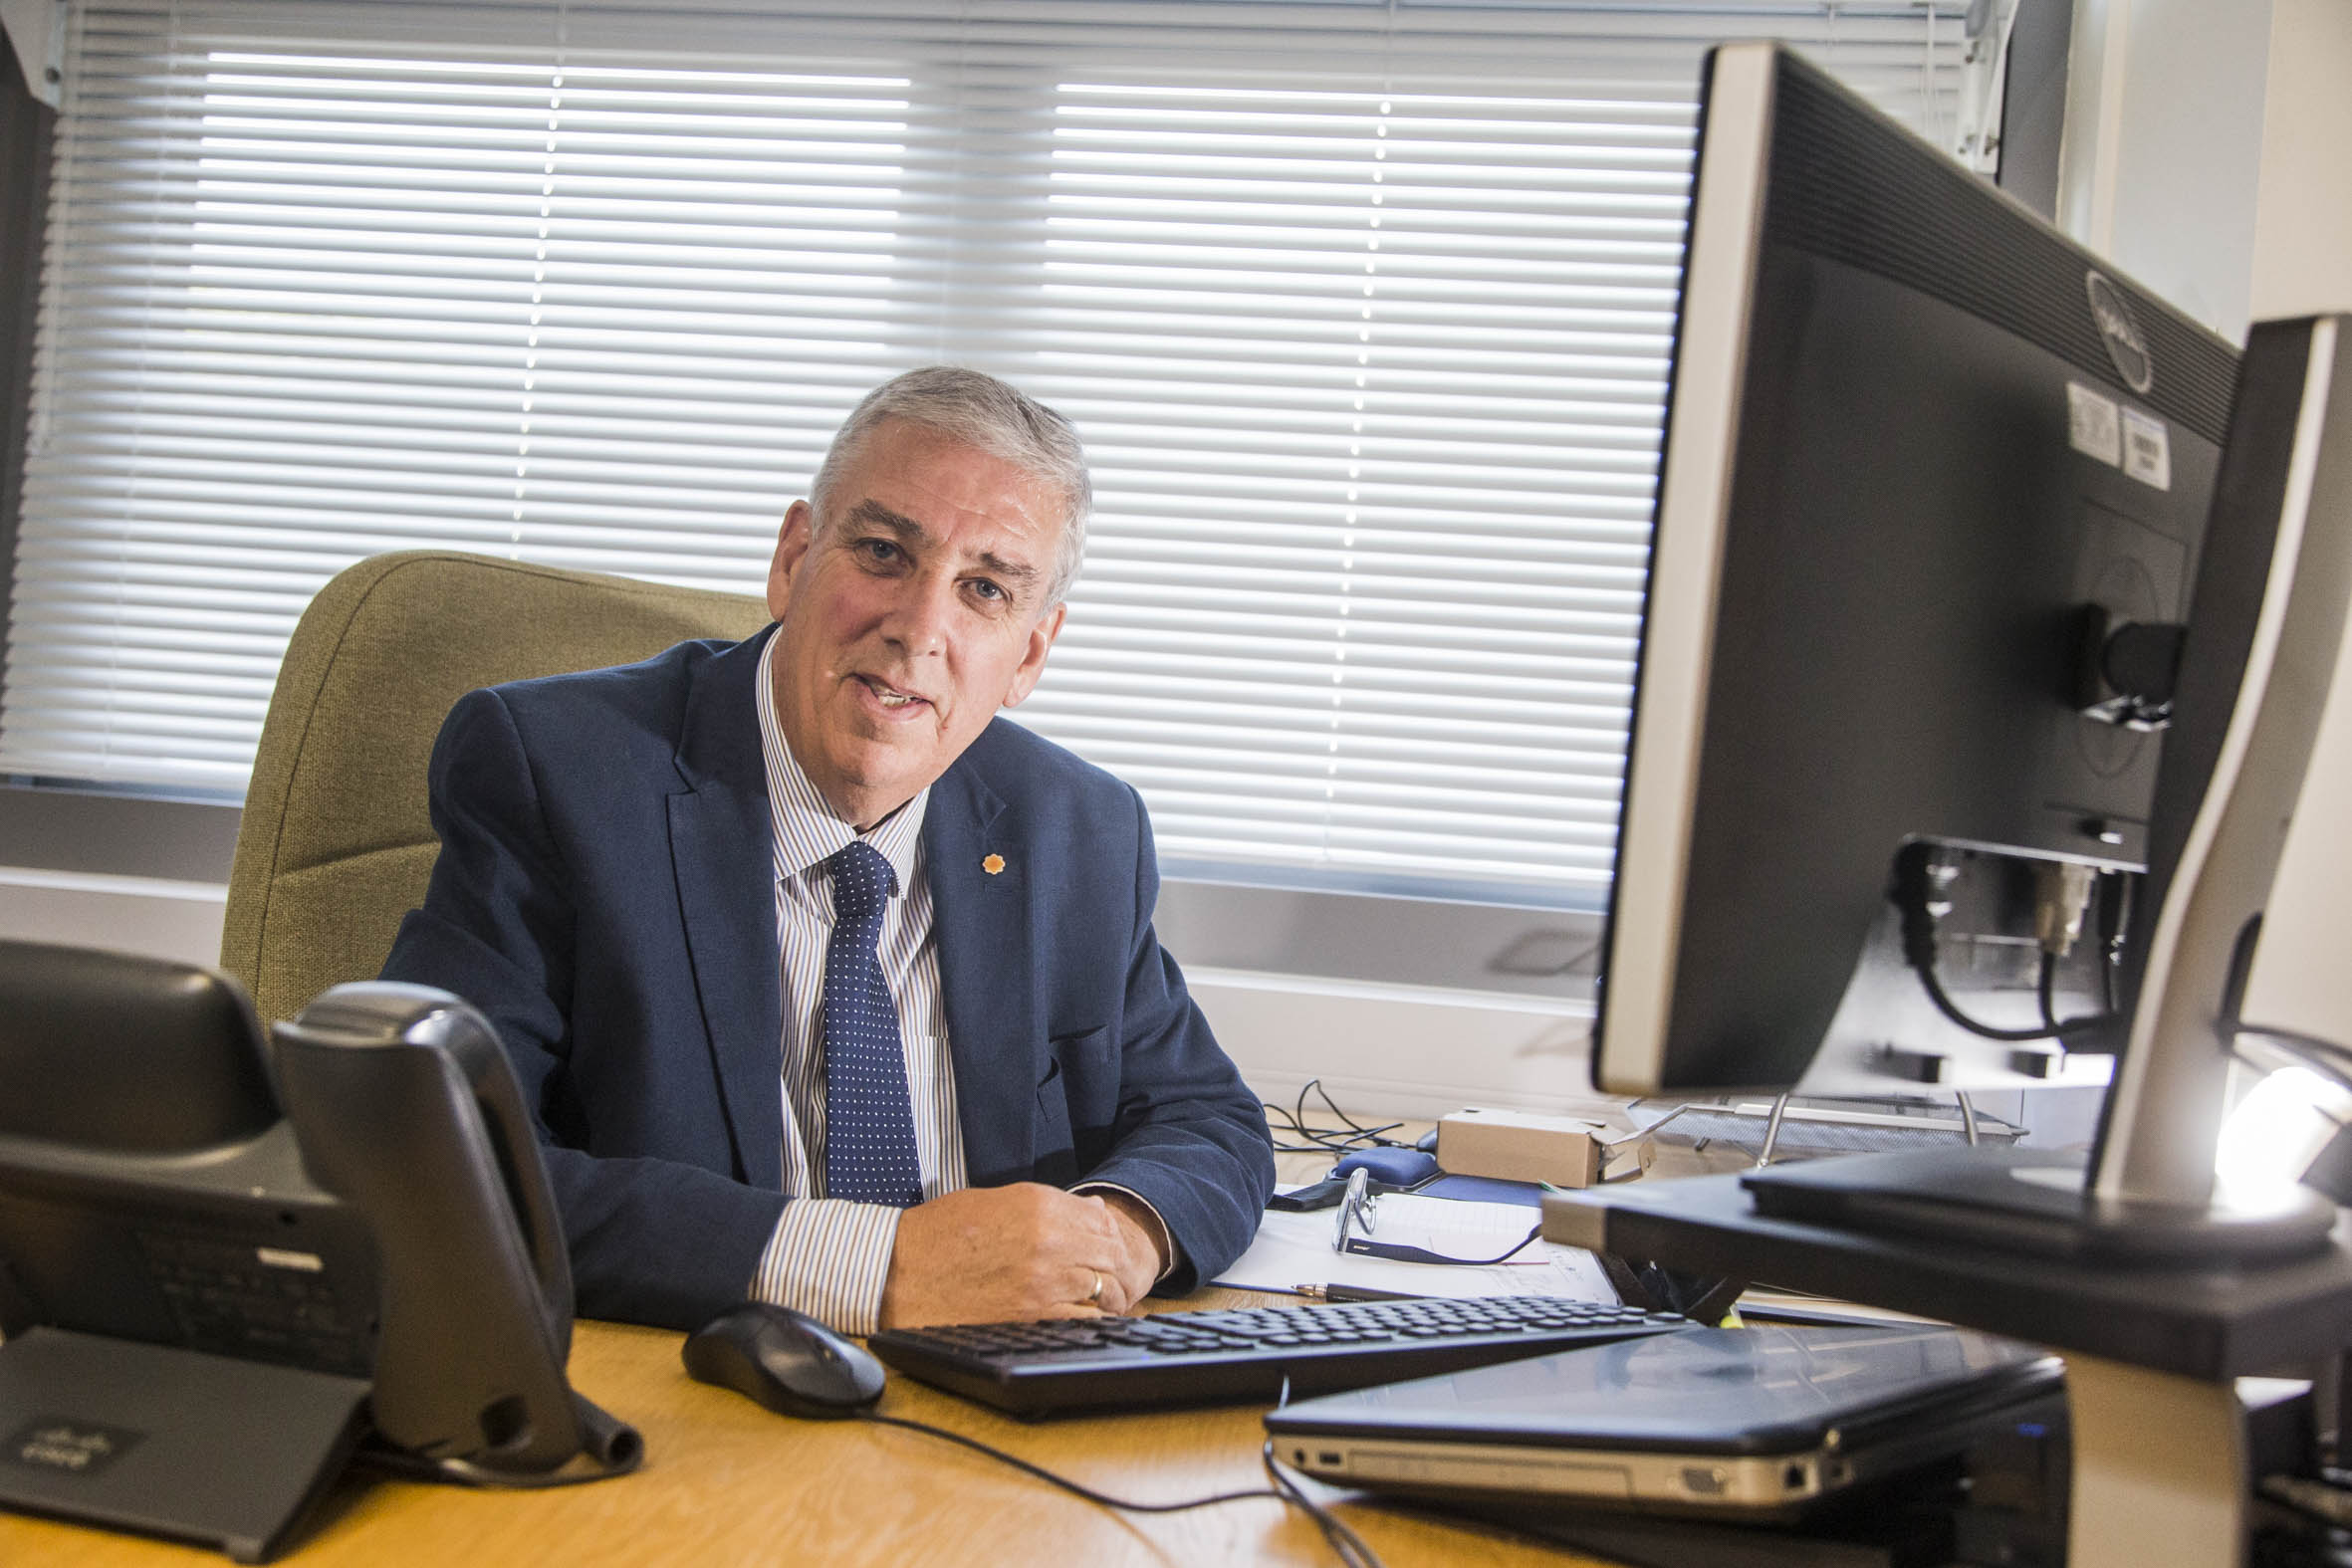 Arfon Jones, the new North Wales Police and Crime Commissioner at Police HQ in Colwyn Bay.